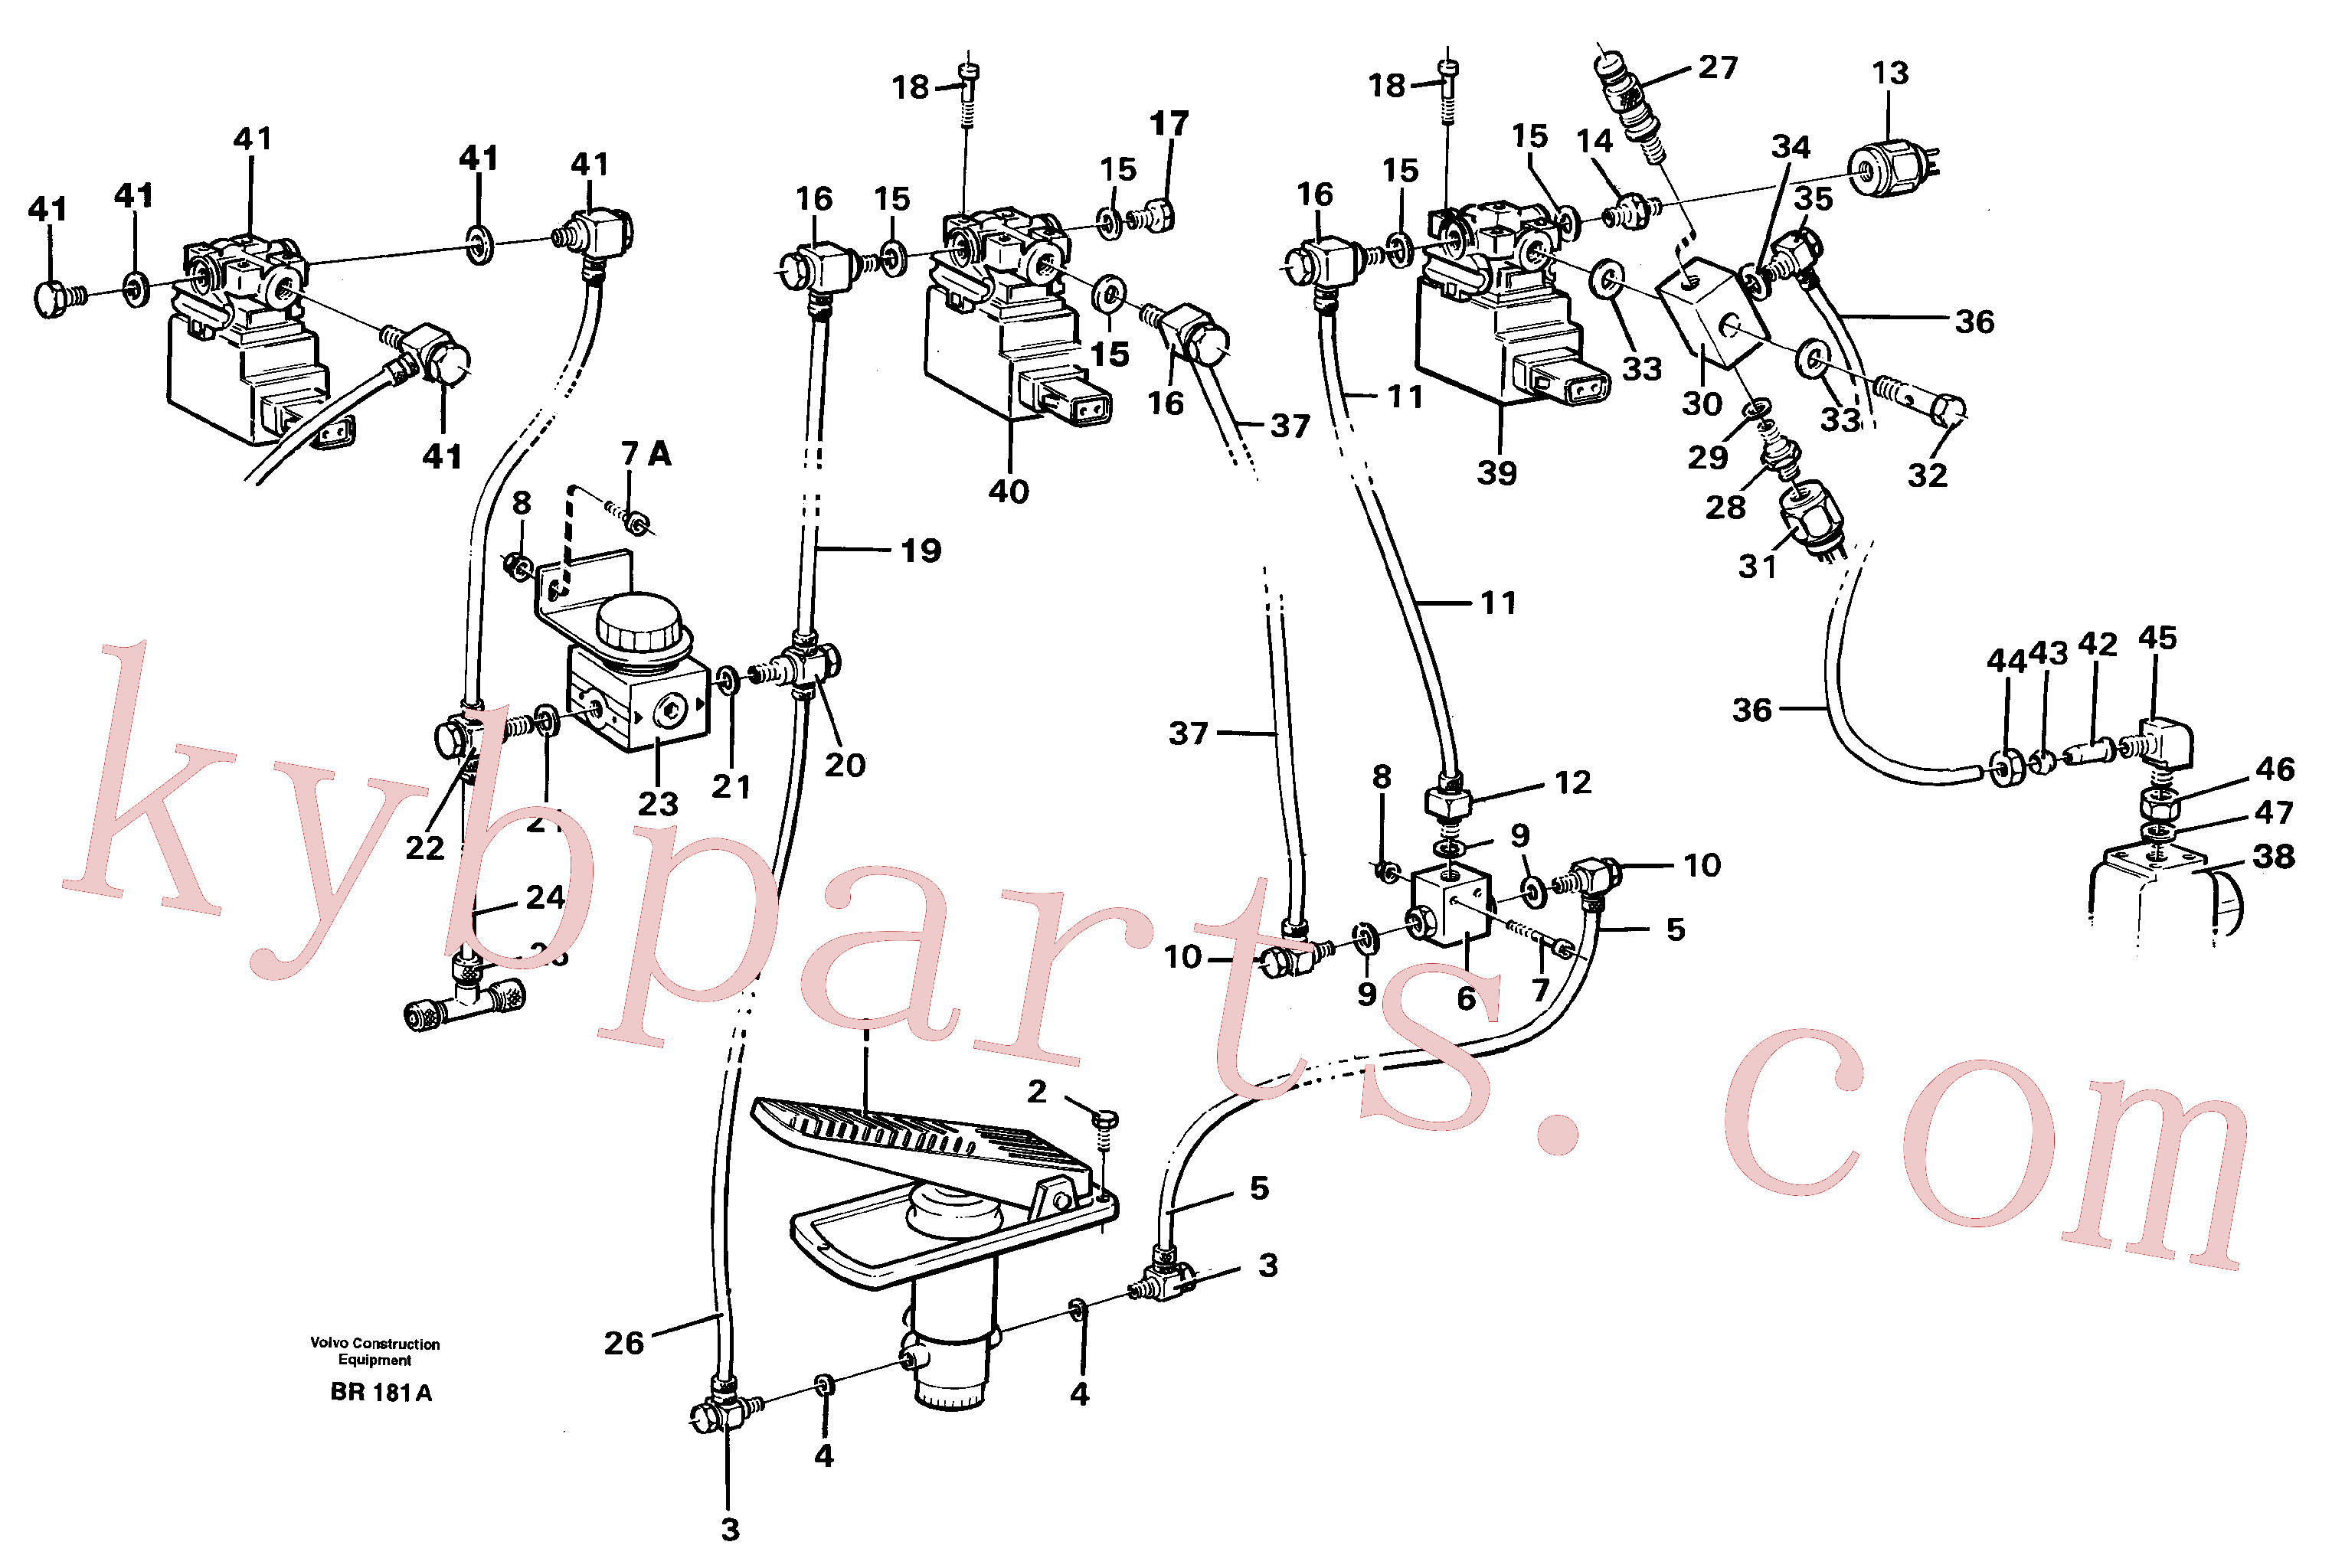 VOE971310 for Volvo Pneumatic air system, transmission(BR181A assembly)